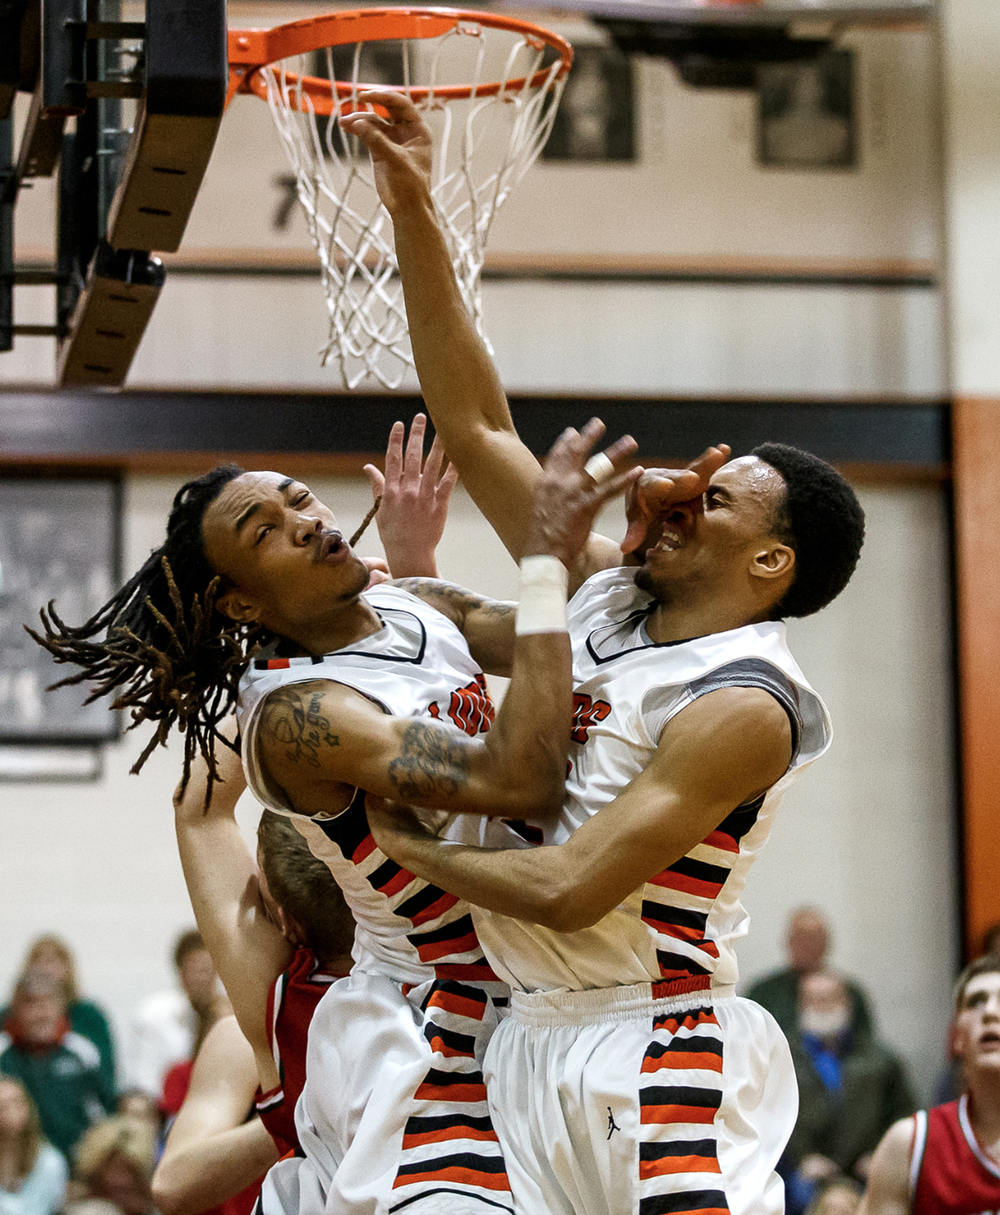 Lanphier's Aarin Thames (3) and Lanphier's Khiri Coleman (33) collide as they both go for a rebound against Lincoln in the first half at Lober-Nika Gymnasium, Friday, Jan. 9, 2015, in Springfield, Ill. Justin L. Fowler/The State Journal-Register